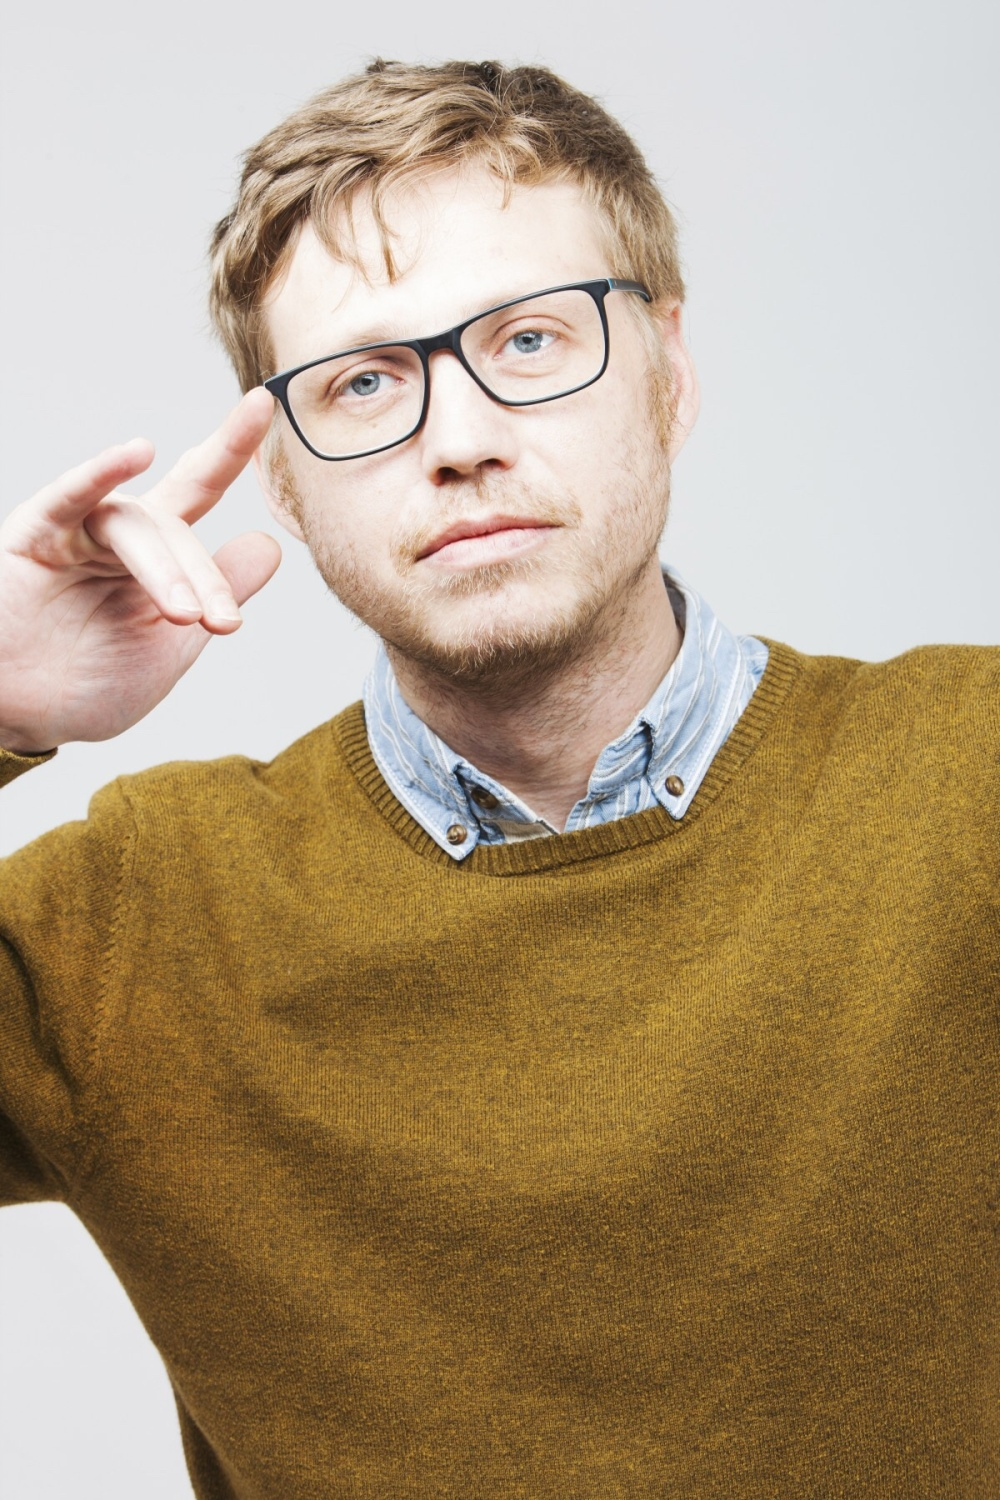 Blonde businessman with black acrylic frames in a mustard yellow sweater with his right hand raised thoughtfully.